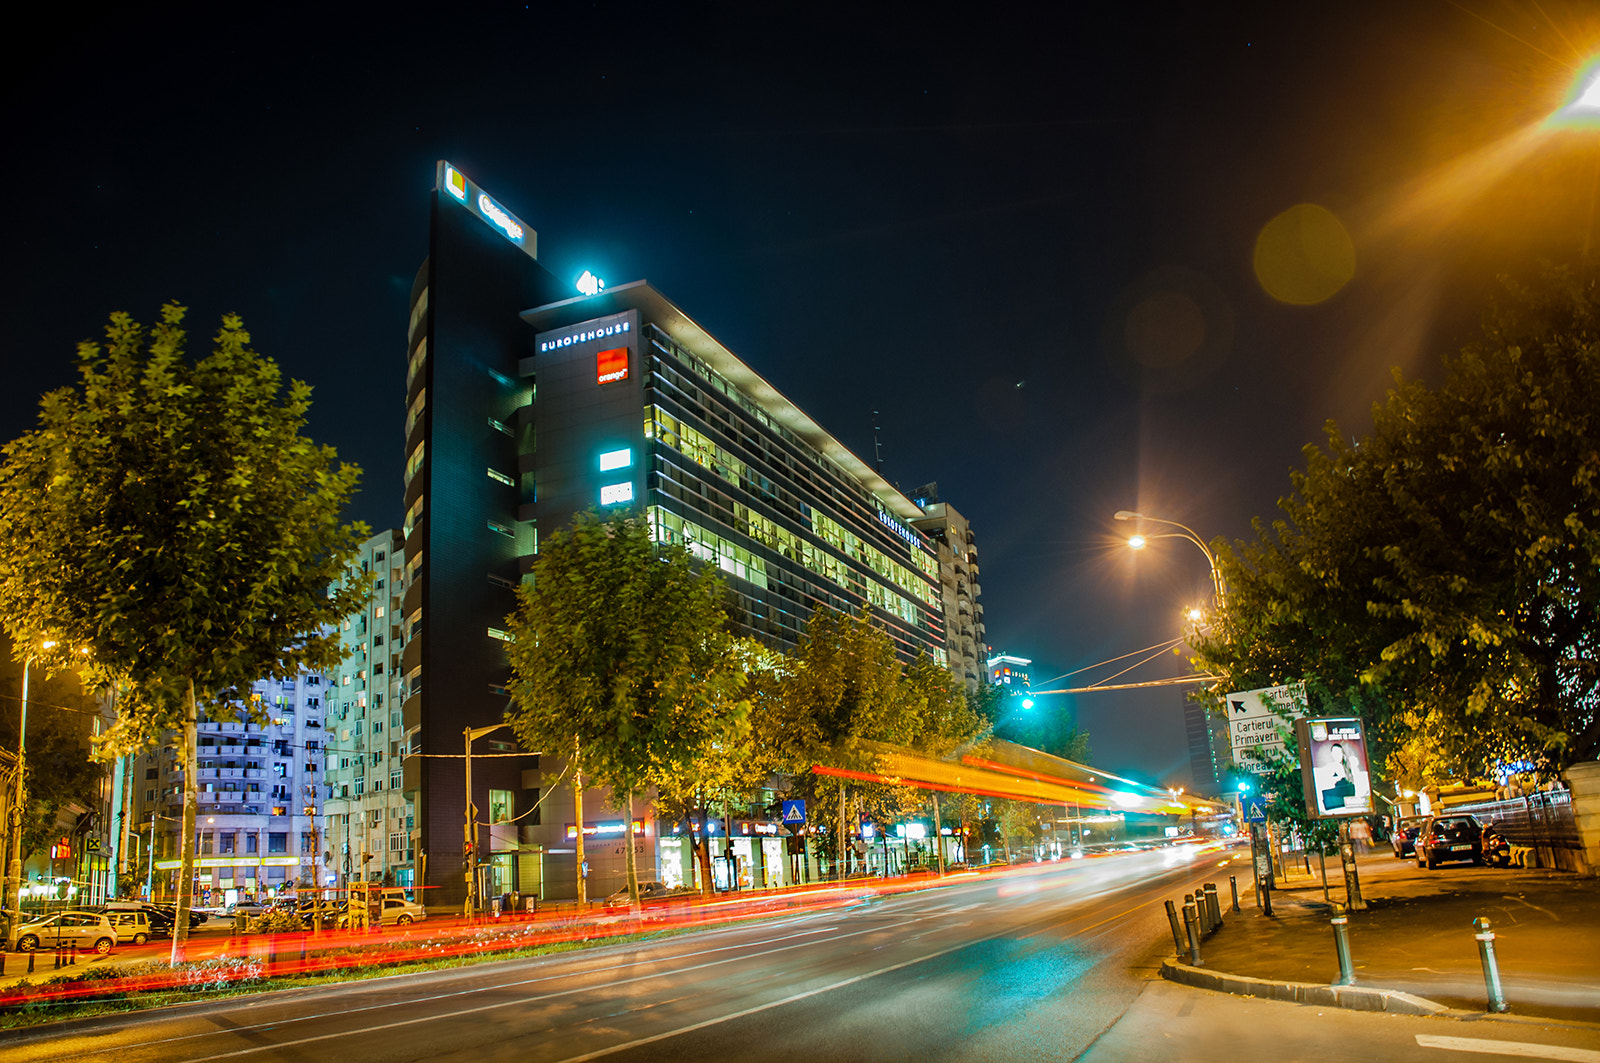 Photograph Nightlife in Bucharest by Ene Catalin on 500px